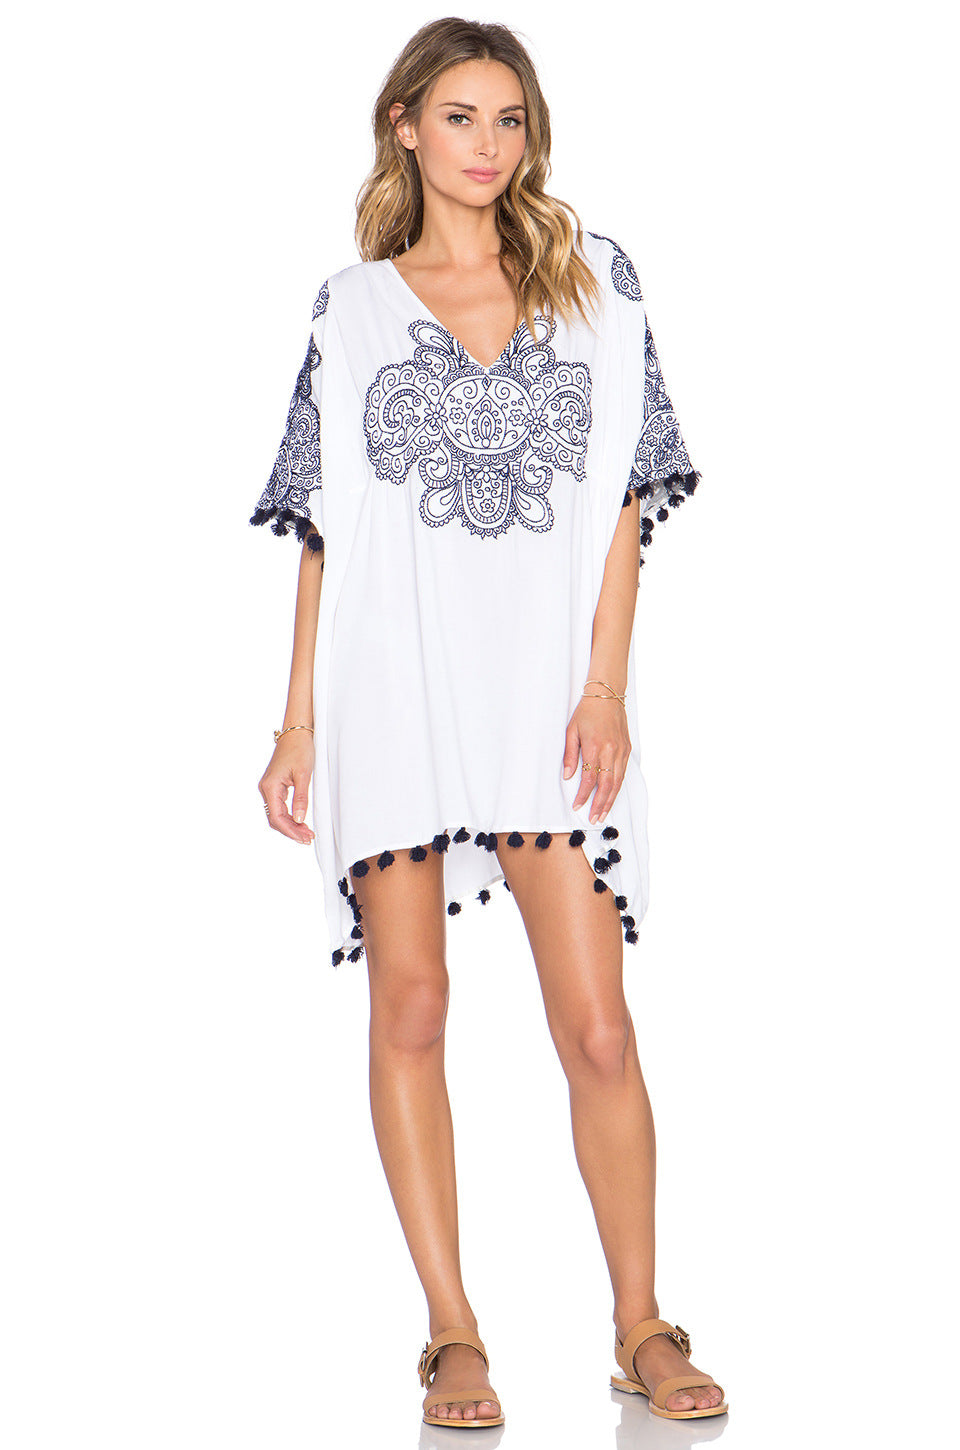 Blue Vintage Print Cover-Up With Tassels - Surf Gypsy